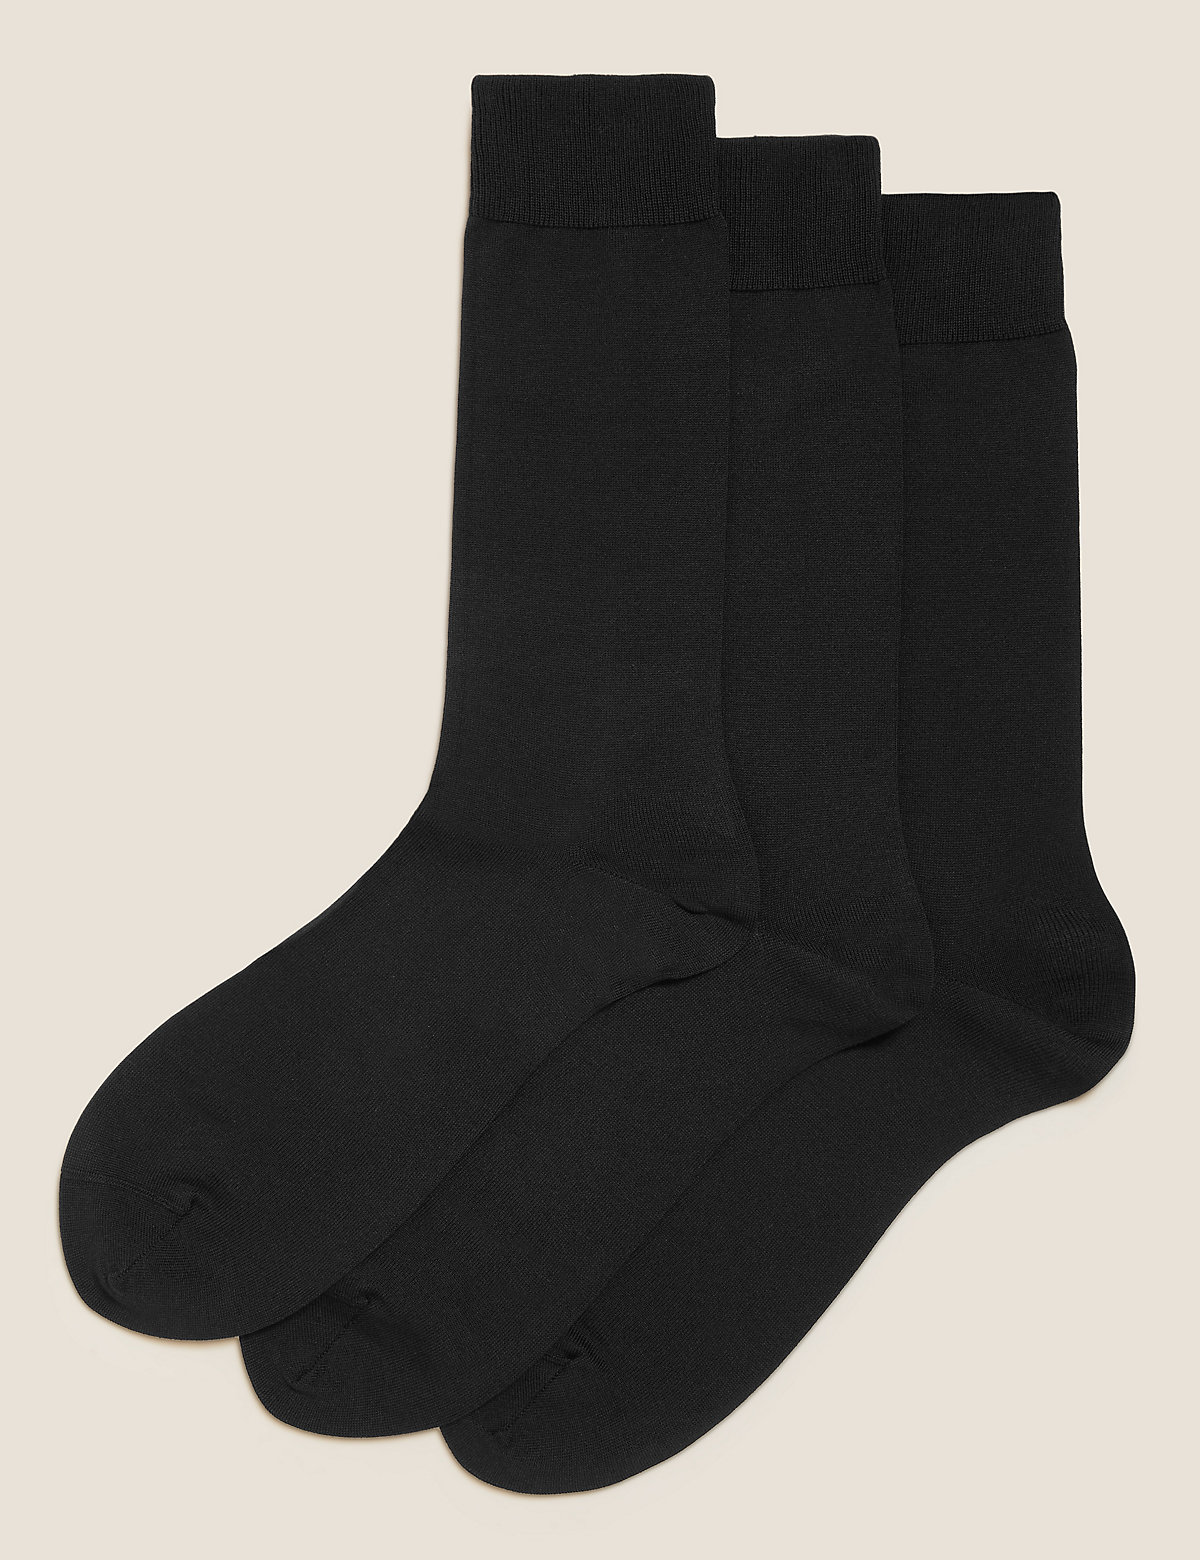 M&S Collection Luxury 3 Pack Luxury Egyptian Cotton Socks